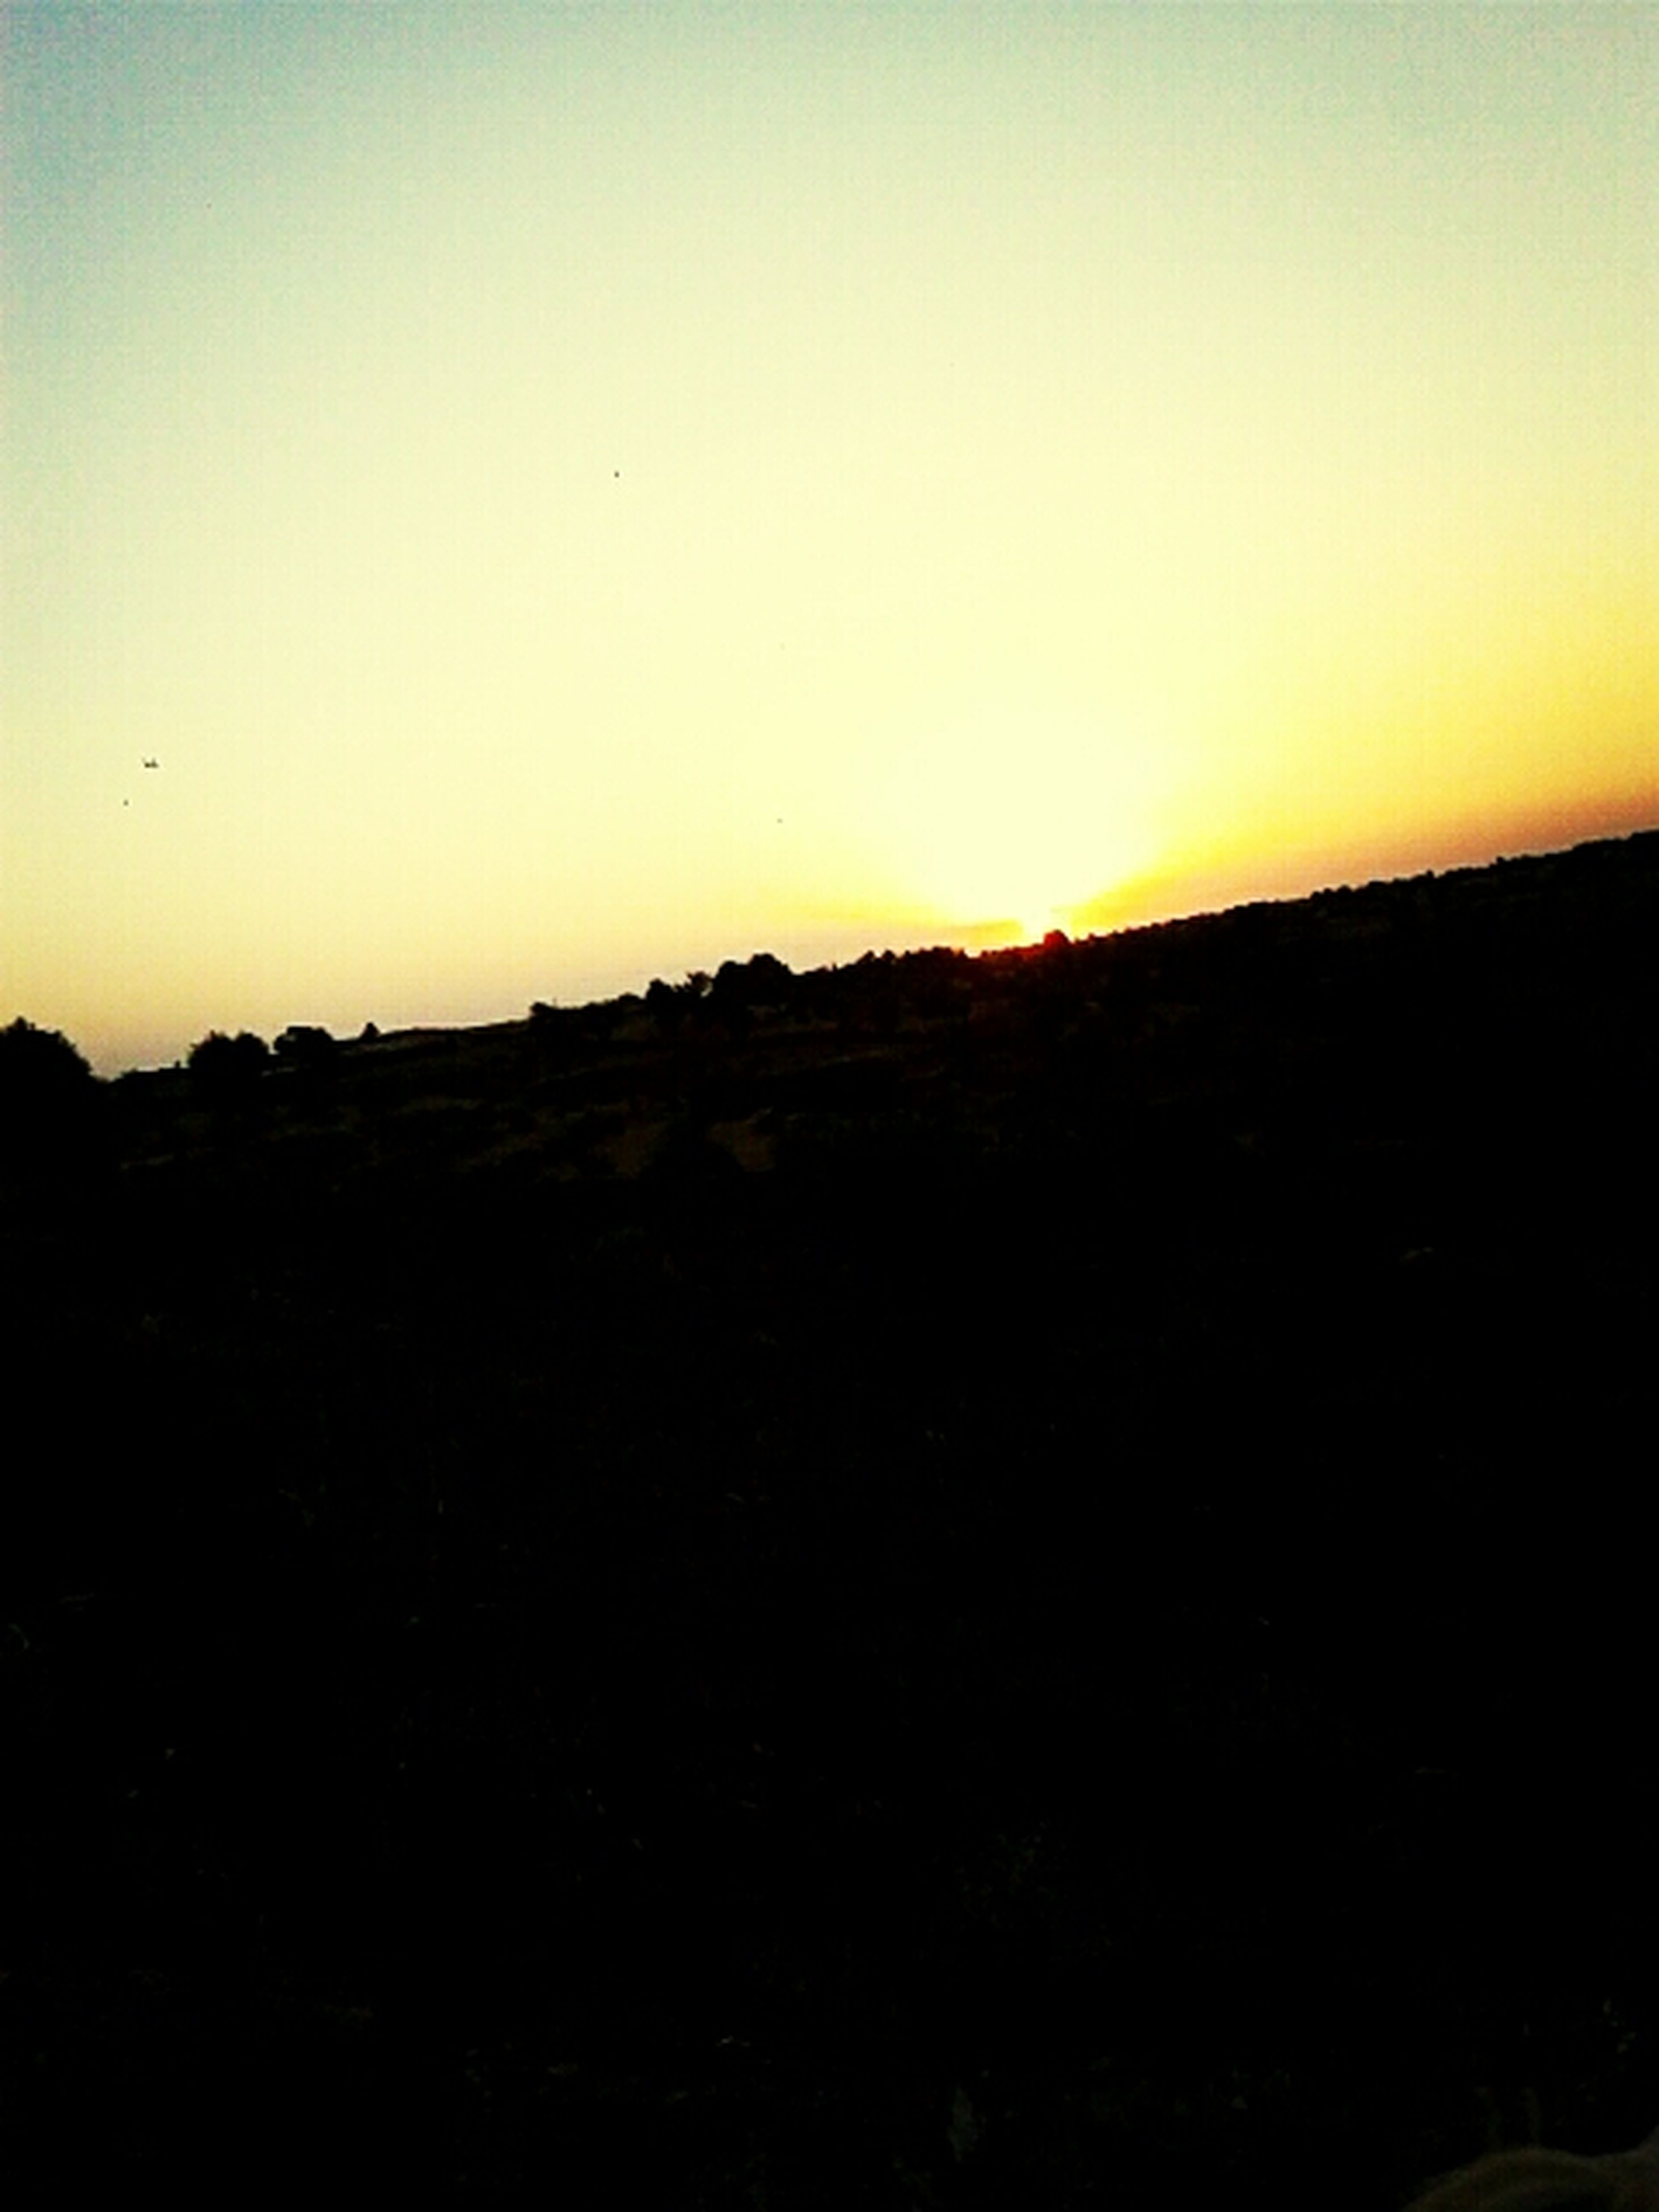 sunset, copy space, silhouette, clear sky, landscape, tranquil scene, scenics, tranquility, beauty in nature, orange color, nature, sky, horizon over land, built structure, dusk, building exterior, dark, field, architecture, idyllic